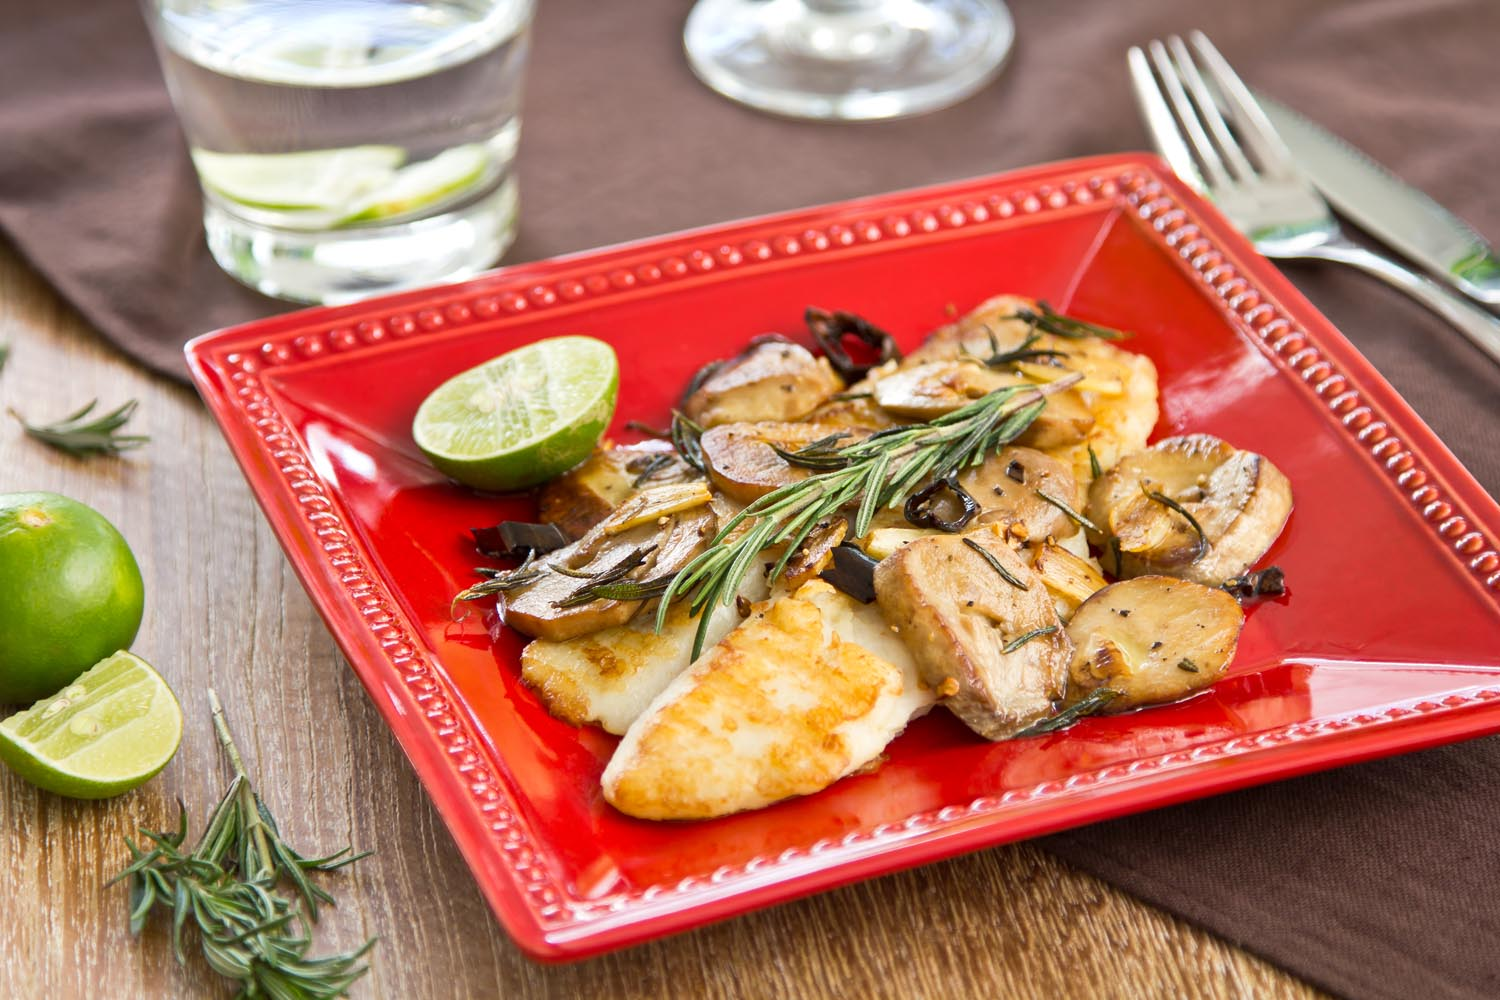 Grilled Dory with Sauteed Mushrooms